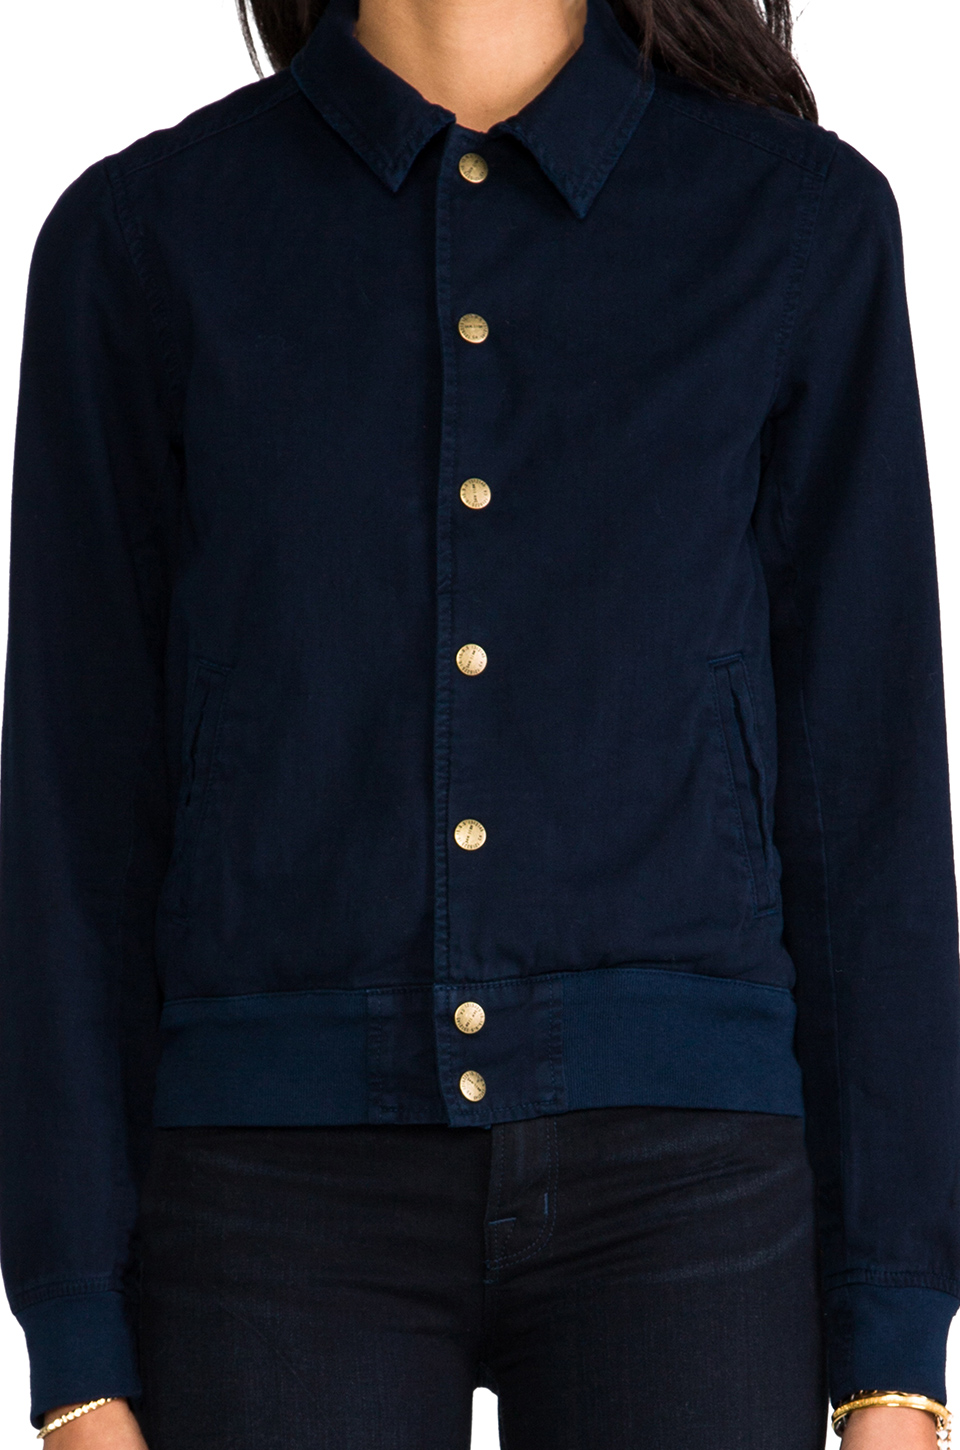 Current/Elliott X The Blonde Salad Exclusive Varsity Jacket in Navy